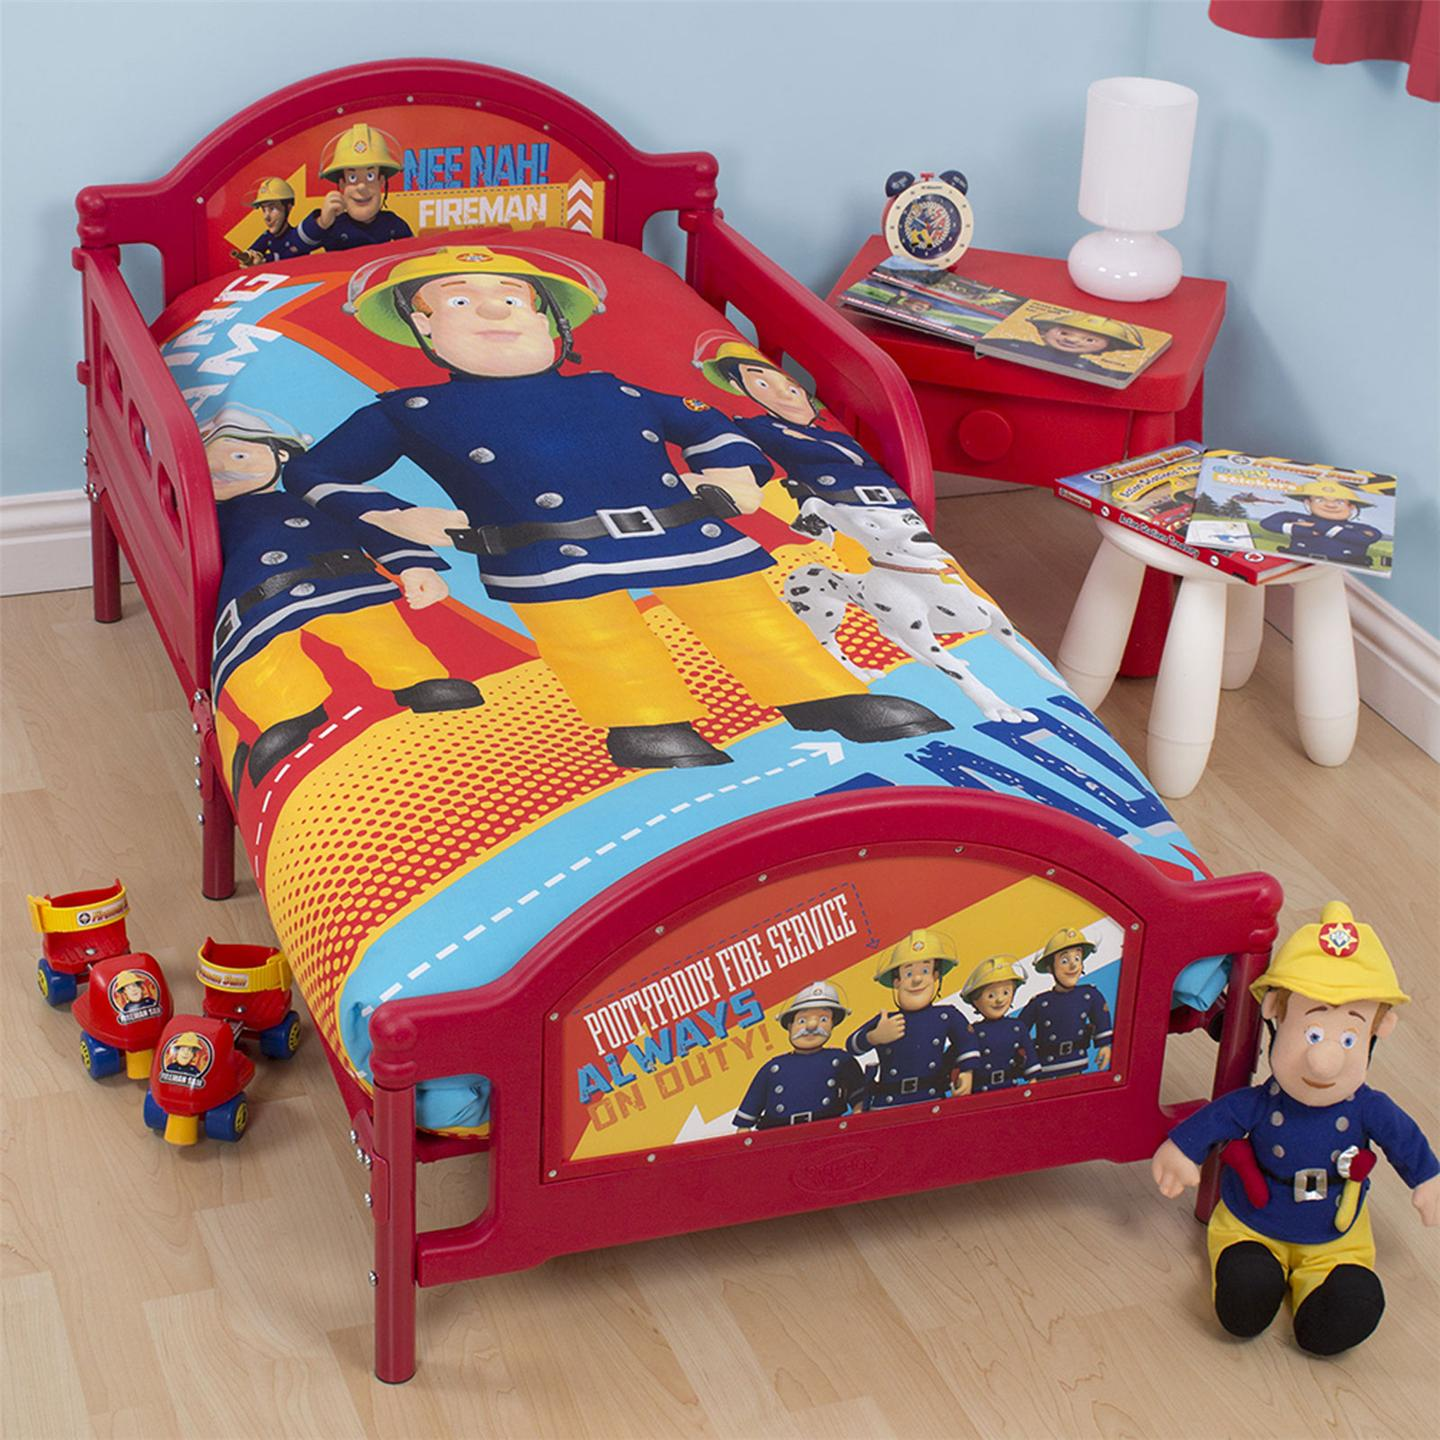 FIREMAN SAM ALARM JUNIOR COT BED DUVET COVER BEDDING SET 4 IN 1 BUNDLE NEW